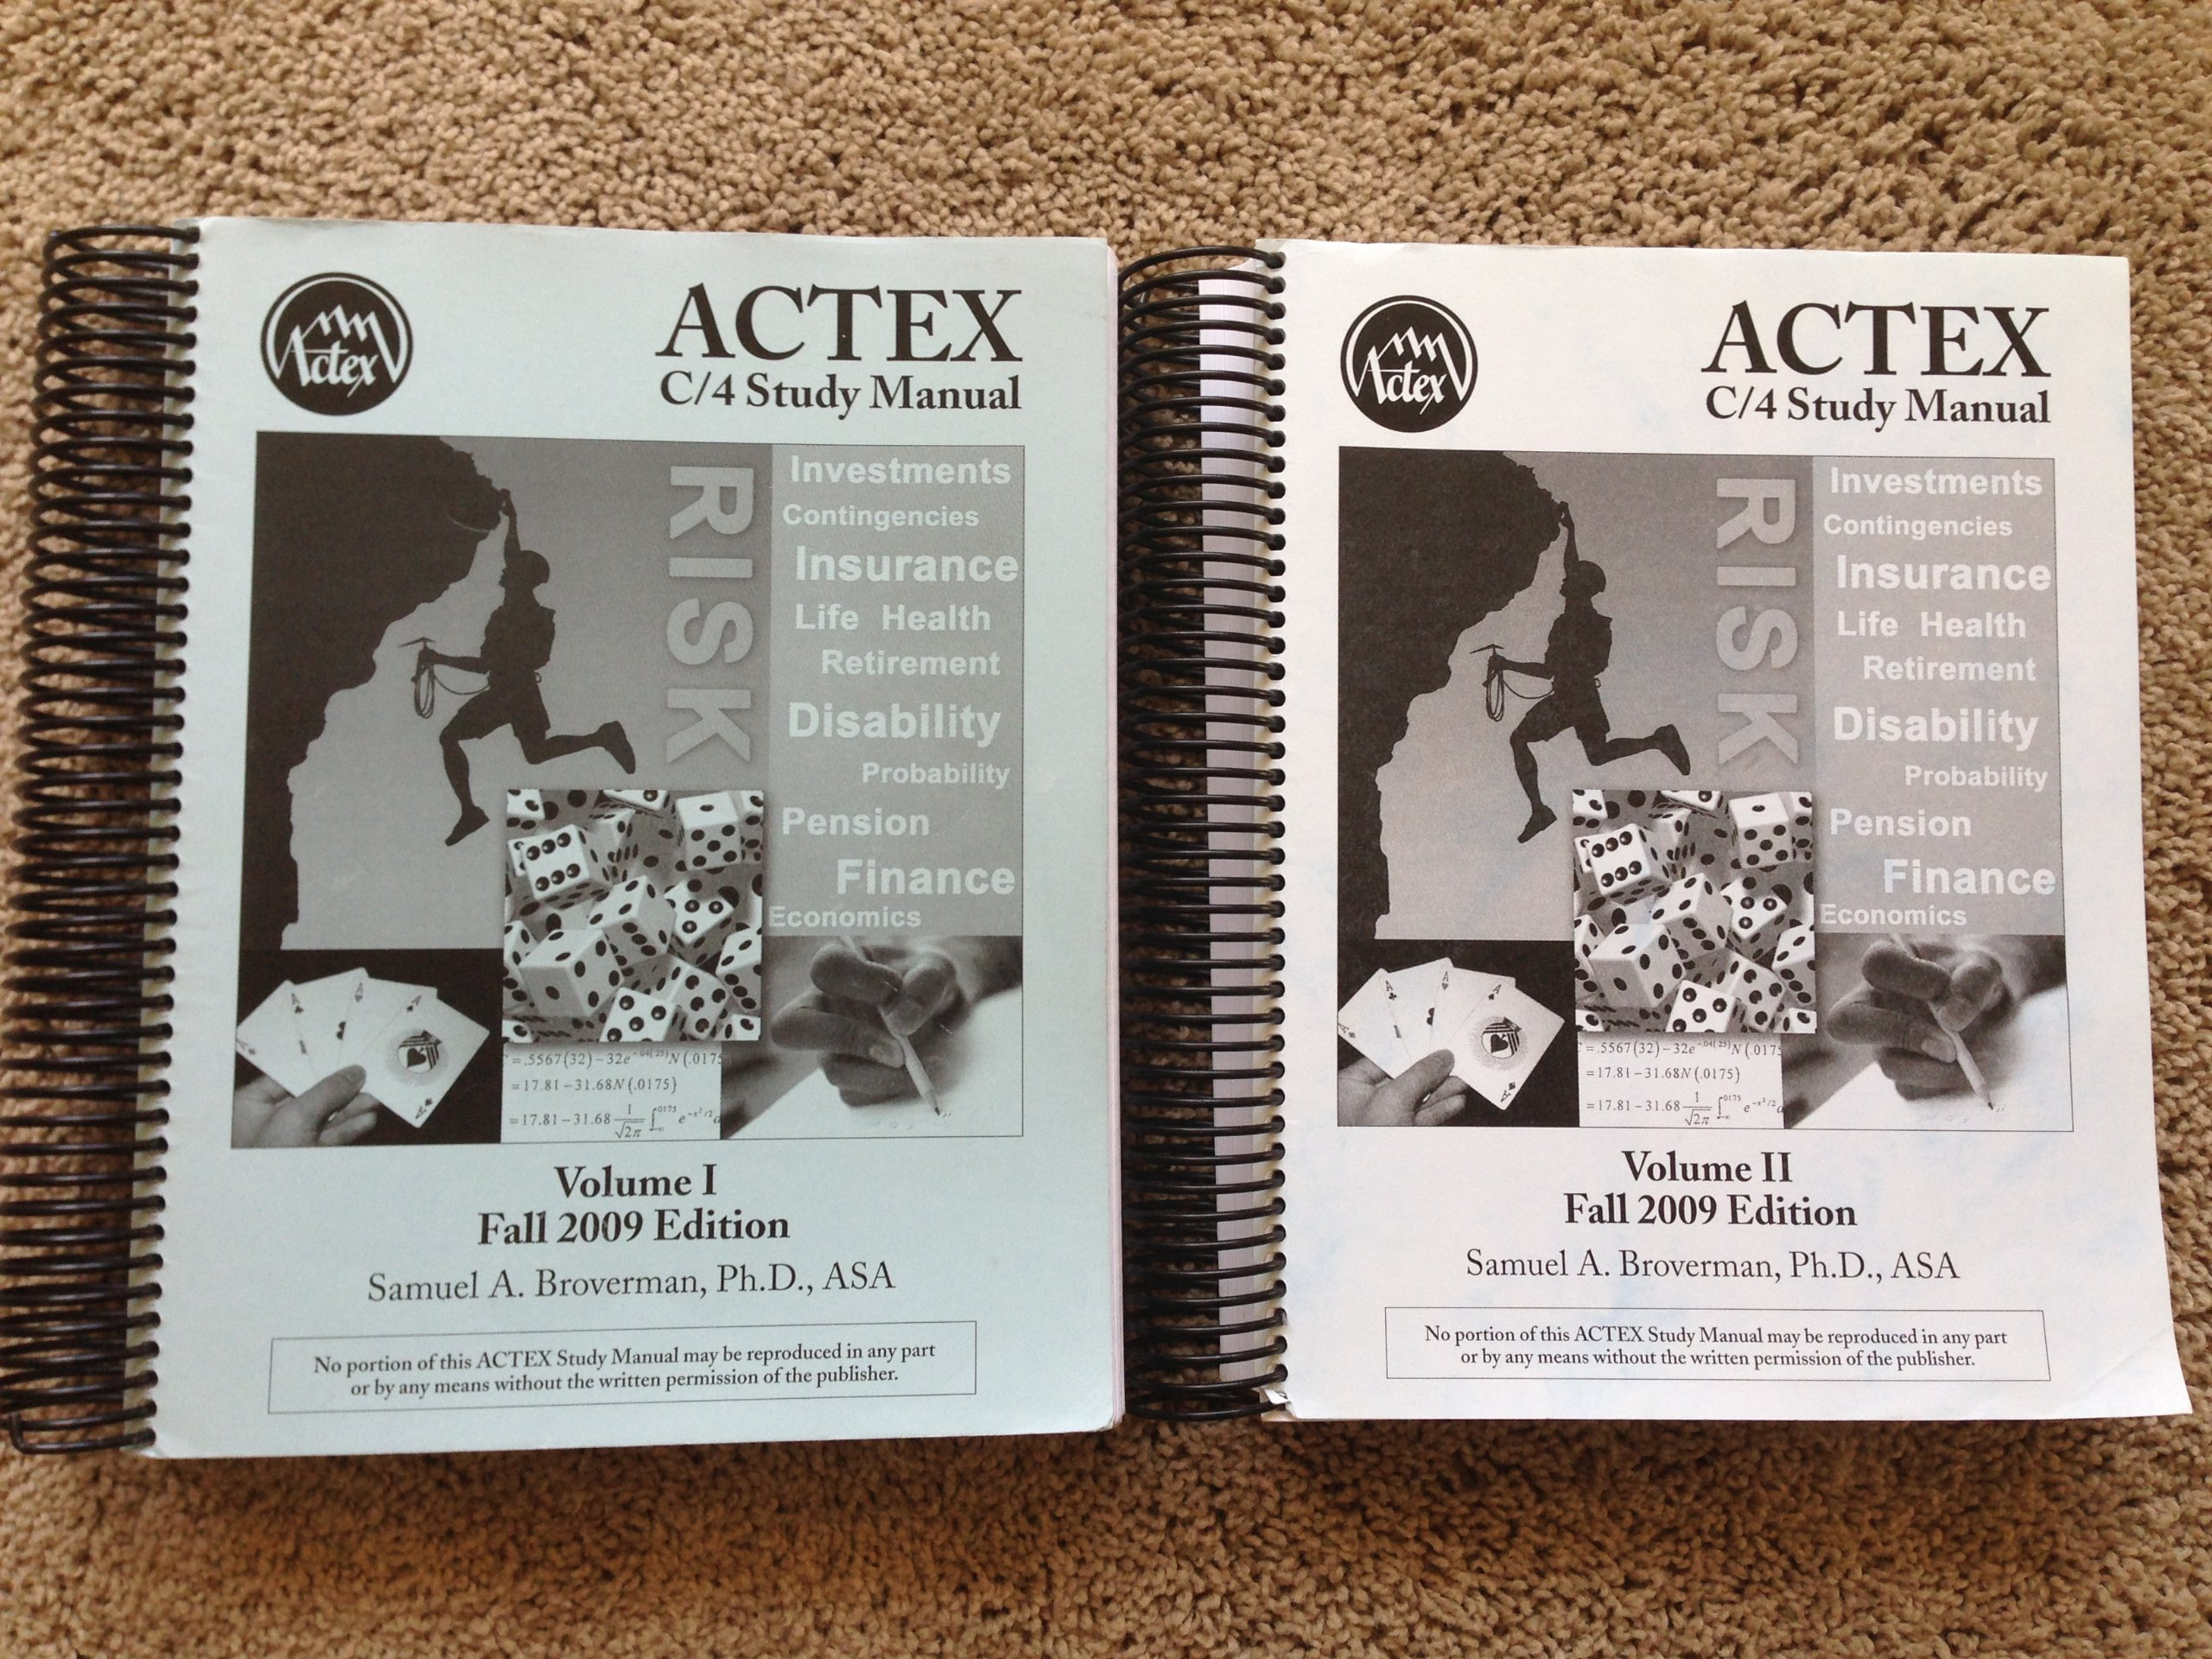 ACTEX Study Manual SOA Exam C / CAS Exam 4 (Volume 1&2): Ph.D., ASA Samuel  A. Broverman: 9781566987004: Amazon.com: Books